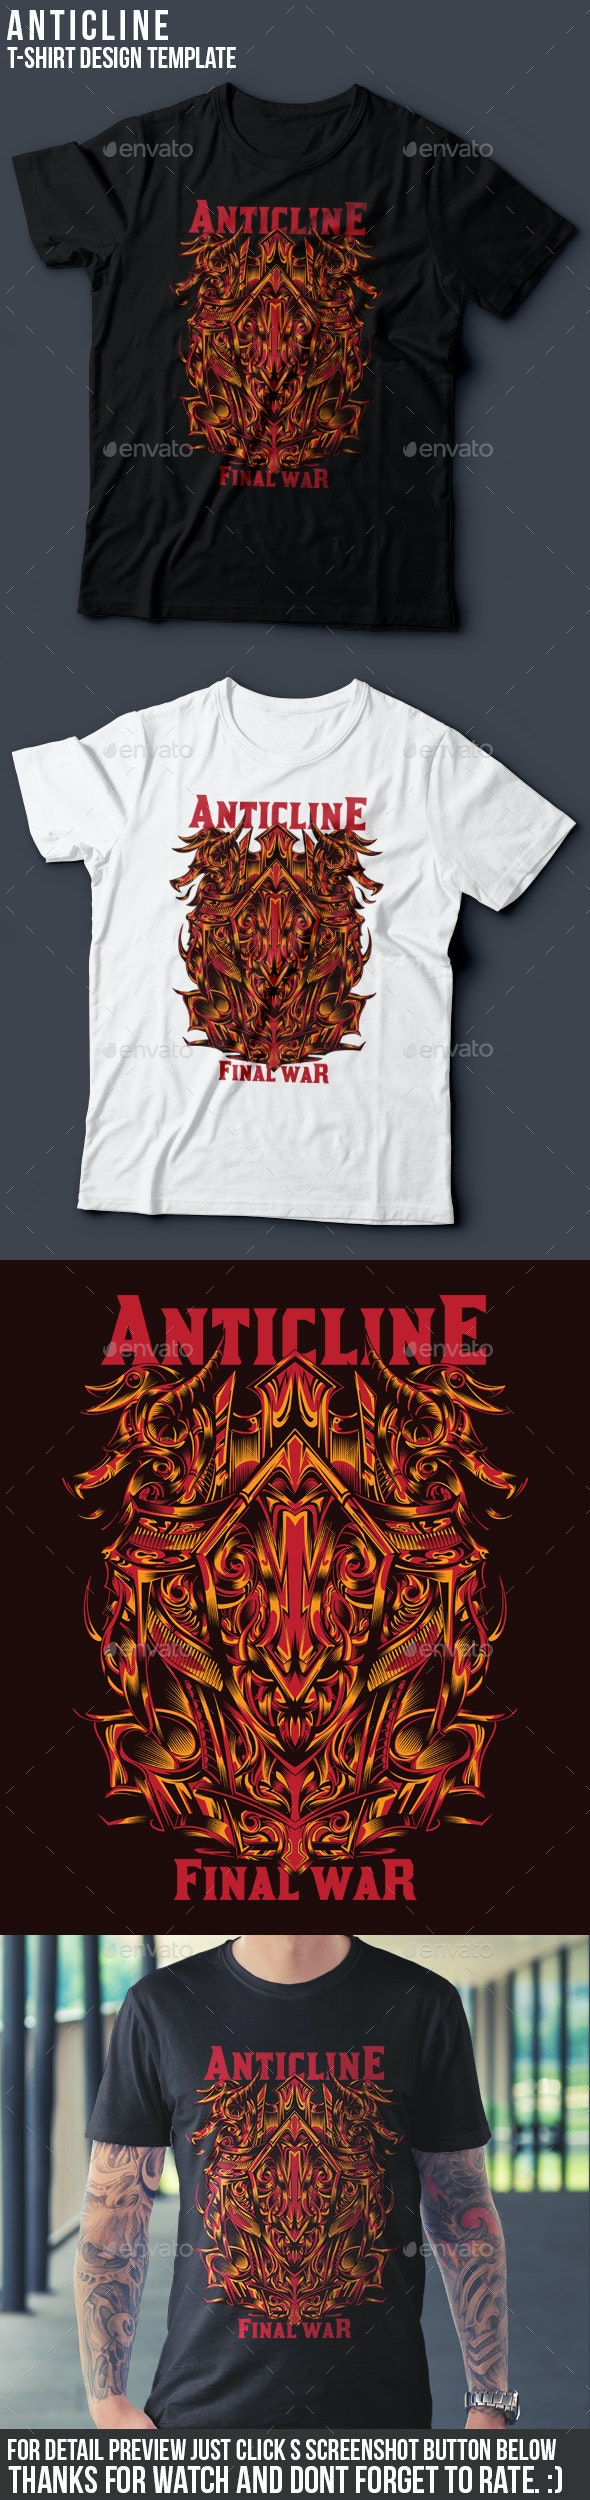 Anticline T-Shirt Design Template